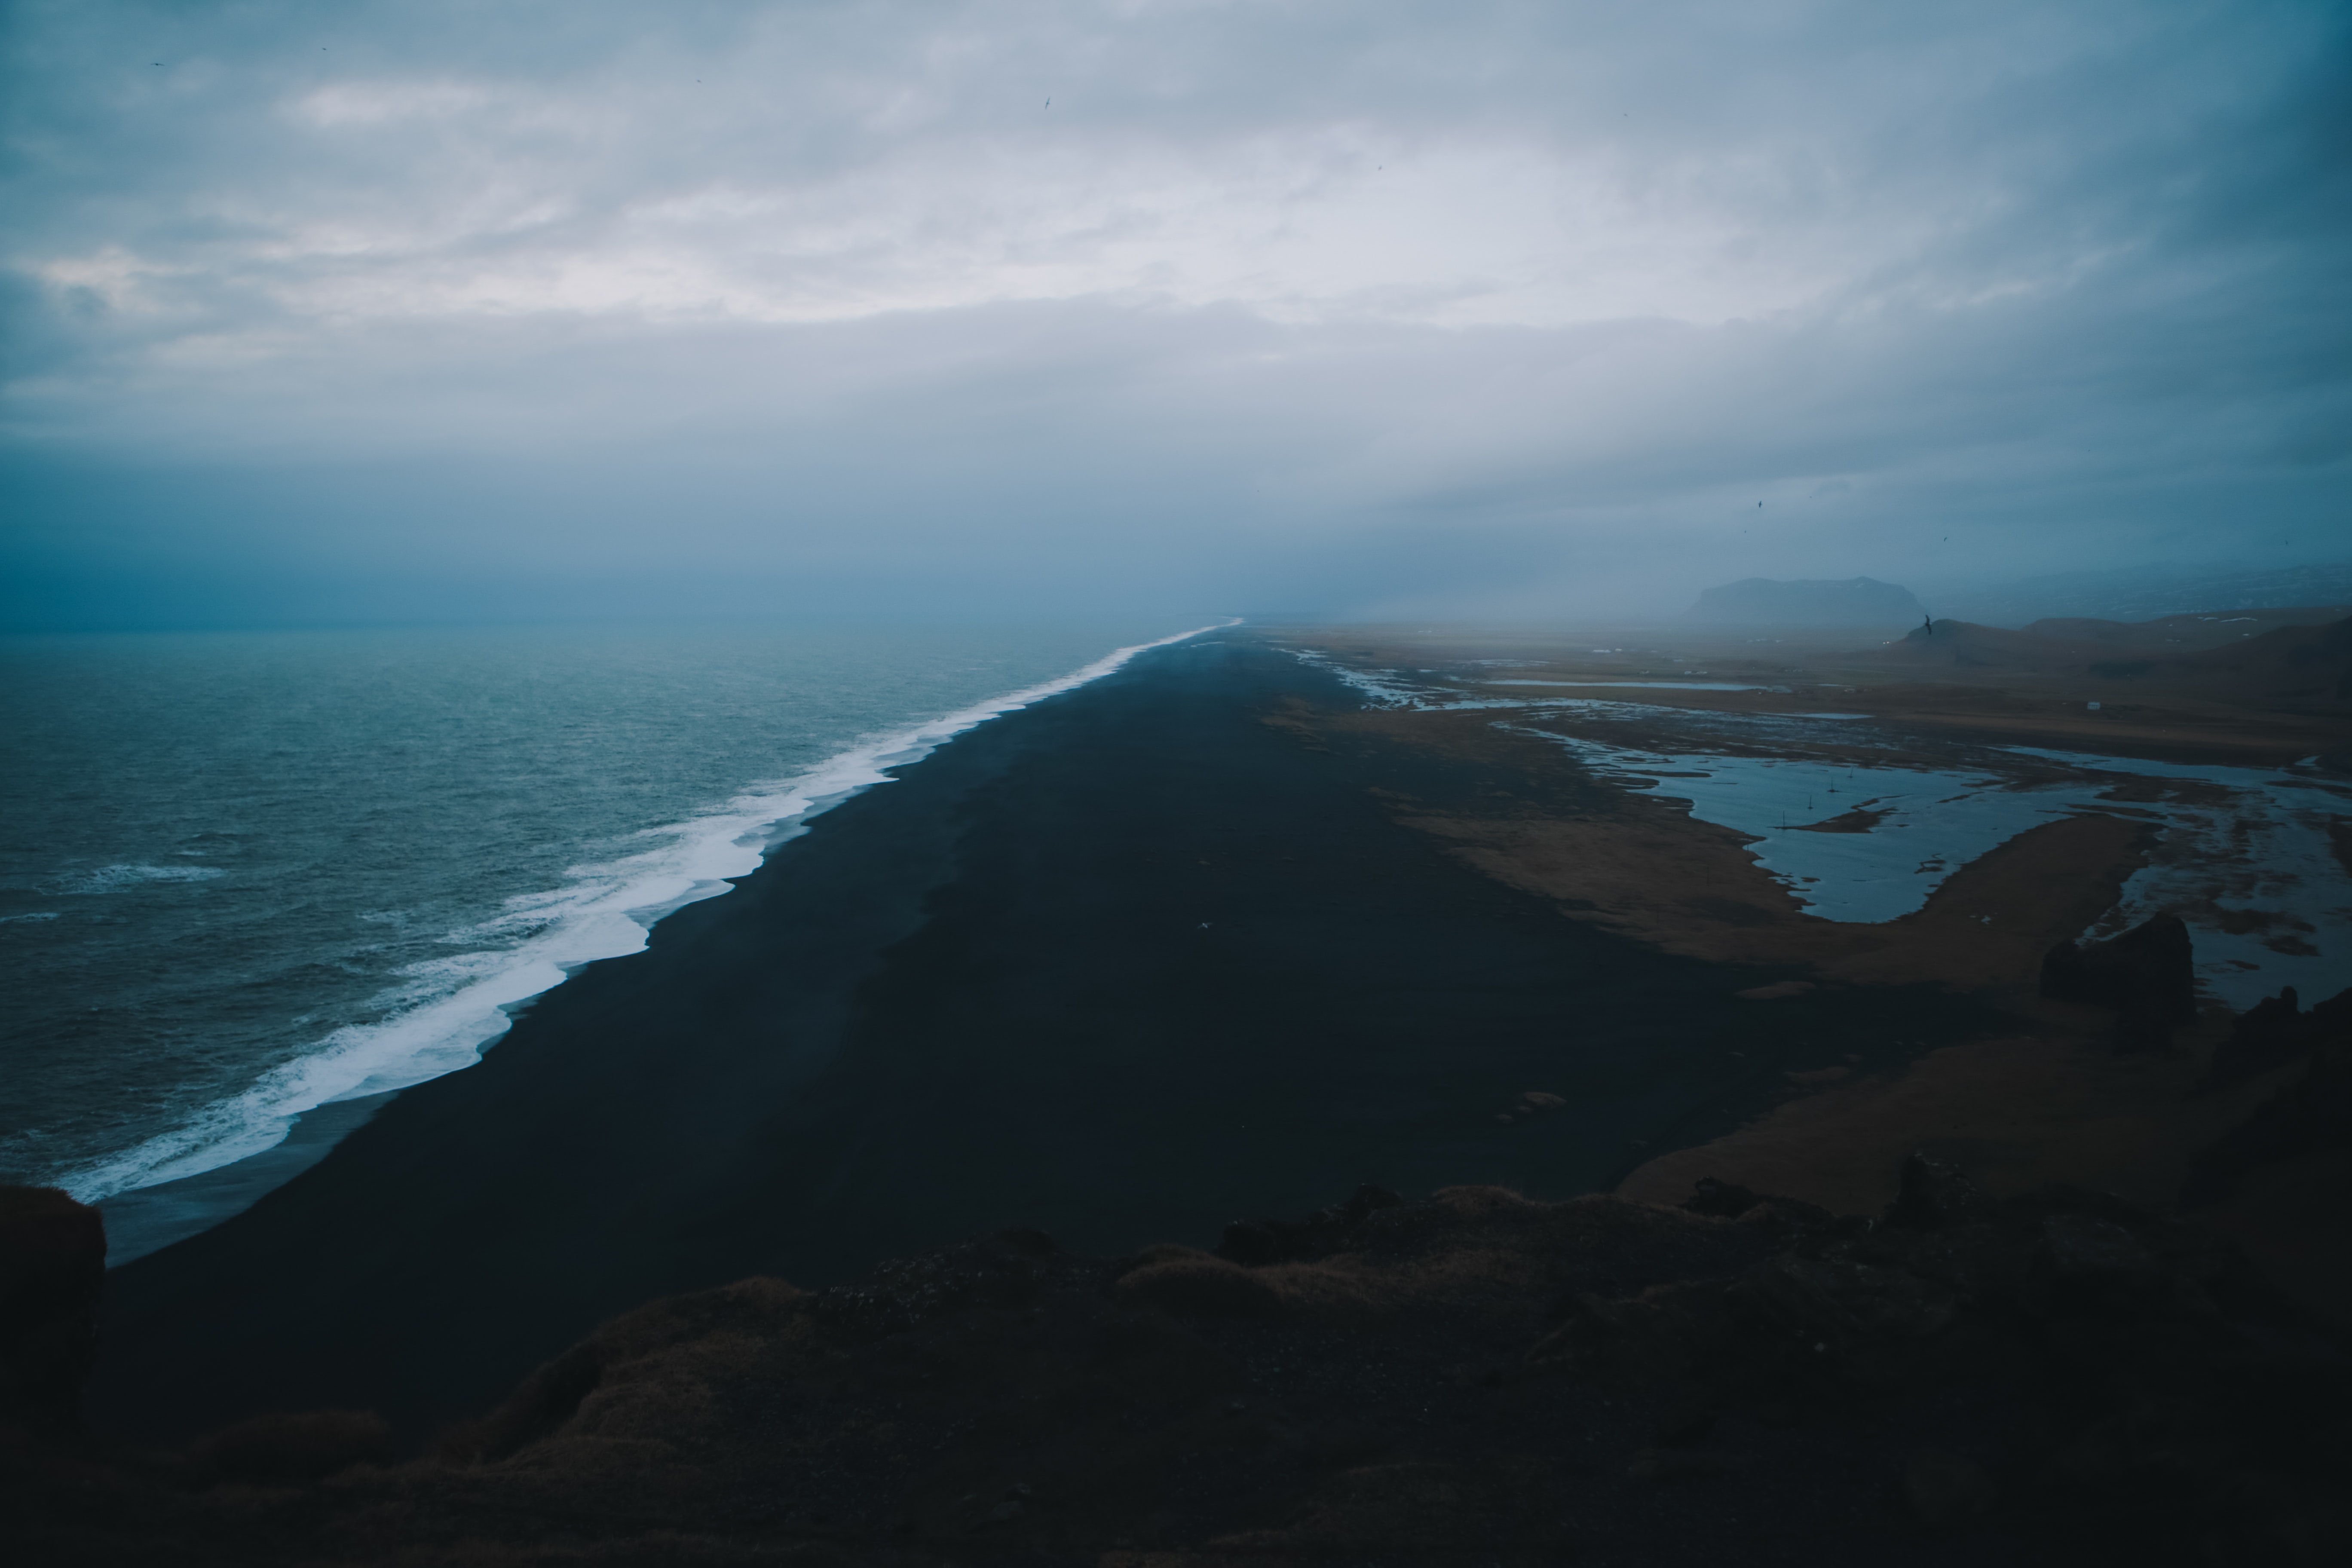 Drone view of empty Black Sand Beach shoreline on a cloudy day